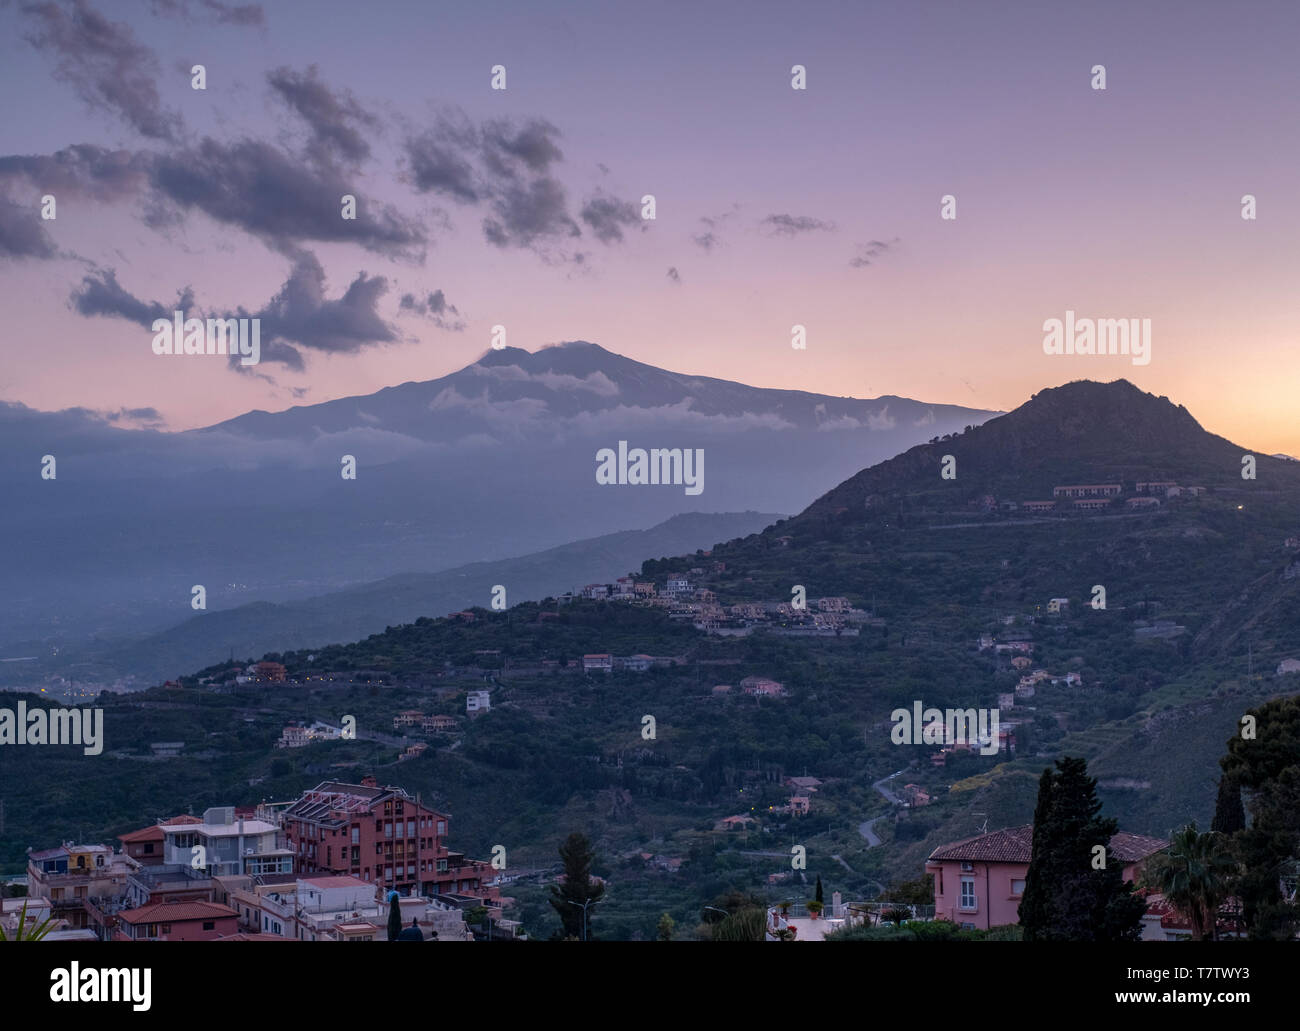 View of Mount Etna at sunset from Taormina, Sicily. - Stock Image